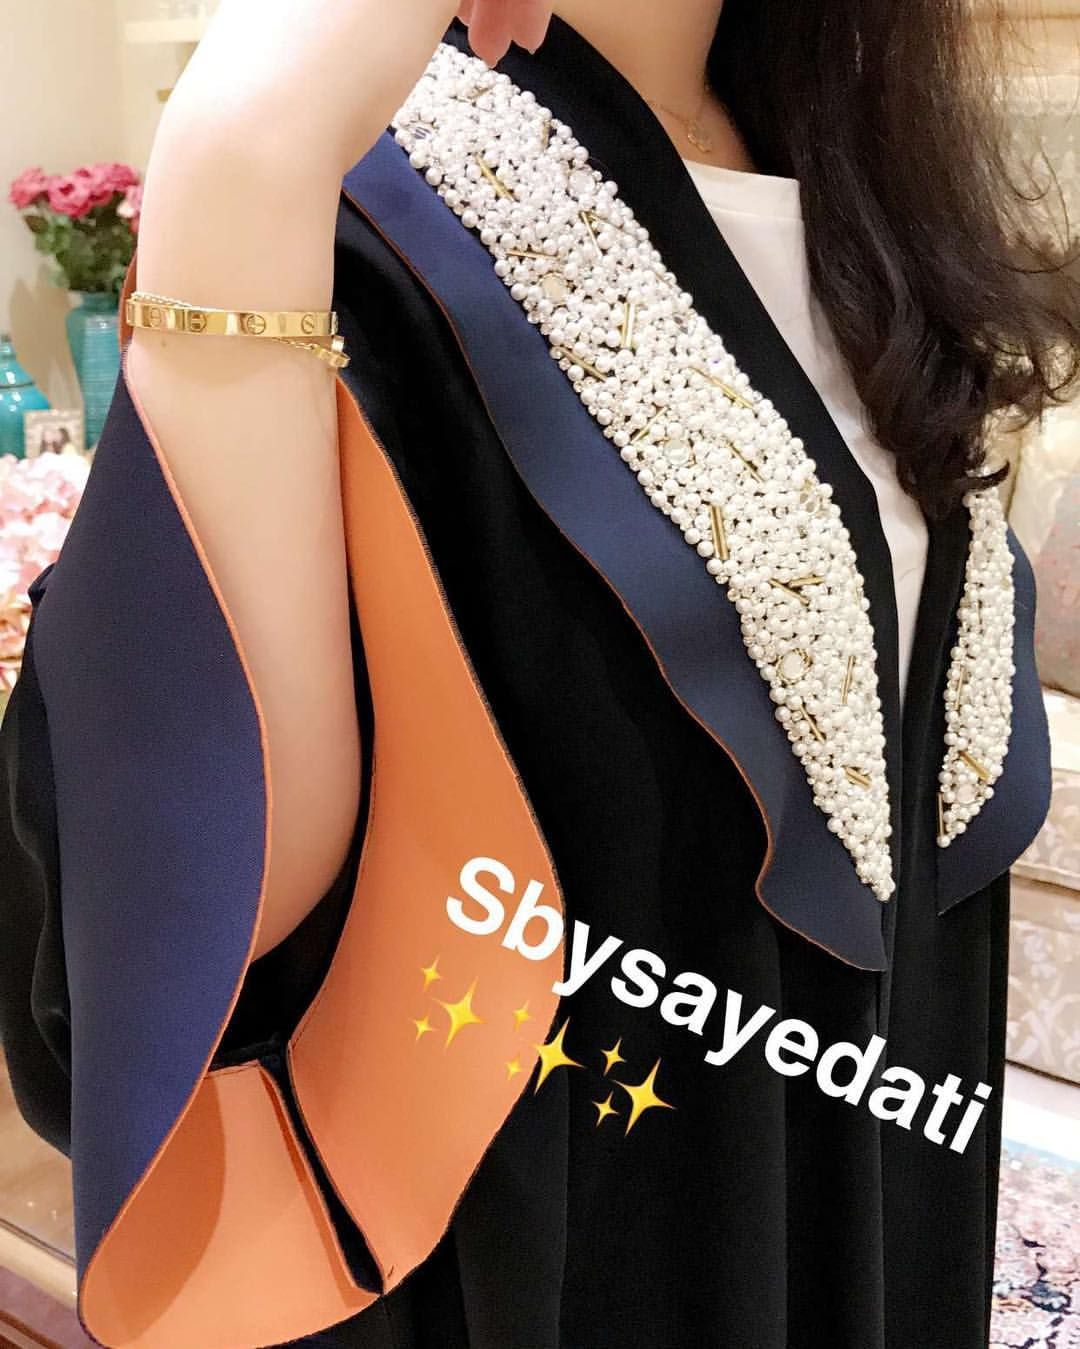 85 Likes 5 Comments S By سيدتي Sbysayedati On Instagram تابعونا في سناب شات Sayedati Abaya Fashion Fashion Hijabi Fashion